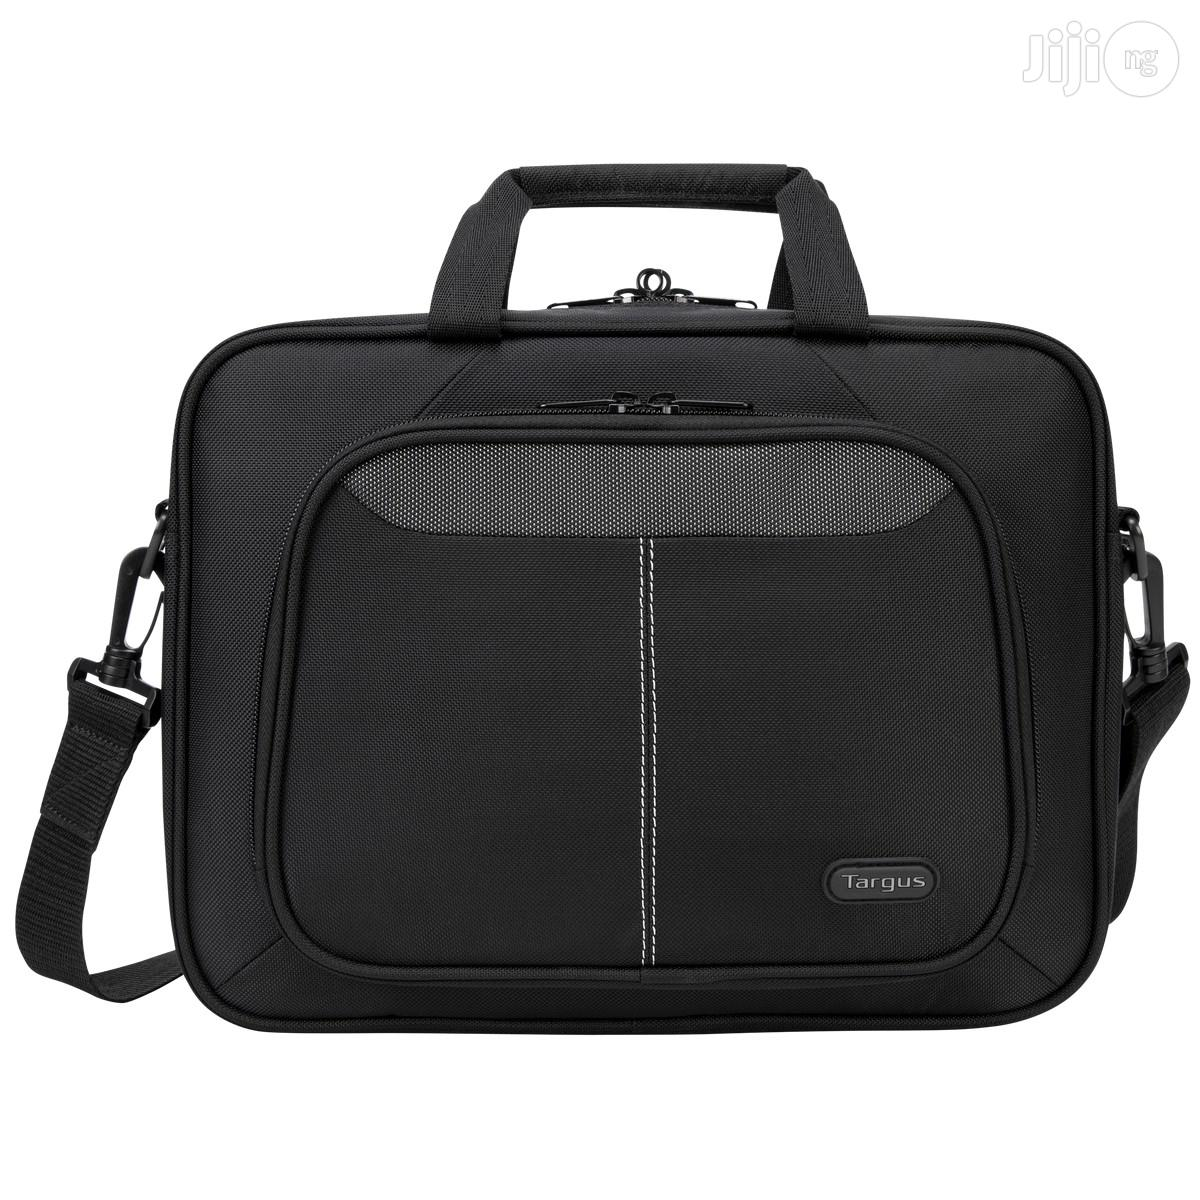 Targus Bag for 12.1inches Laptops/Tablets